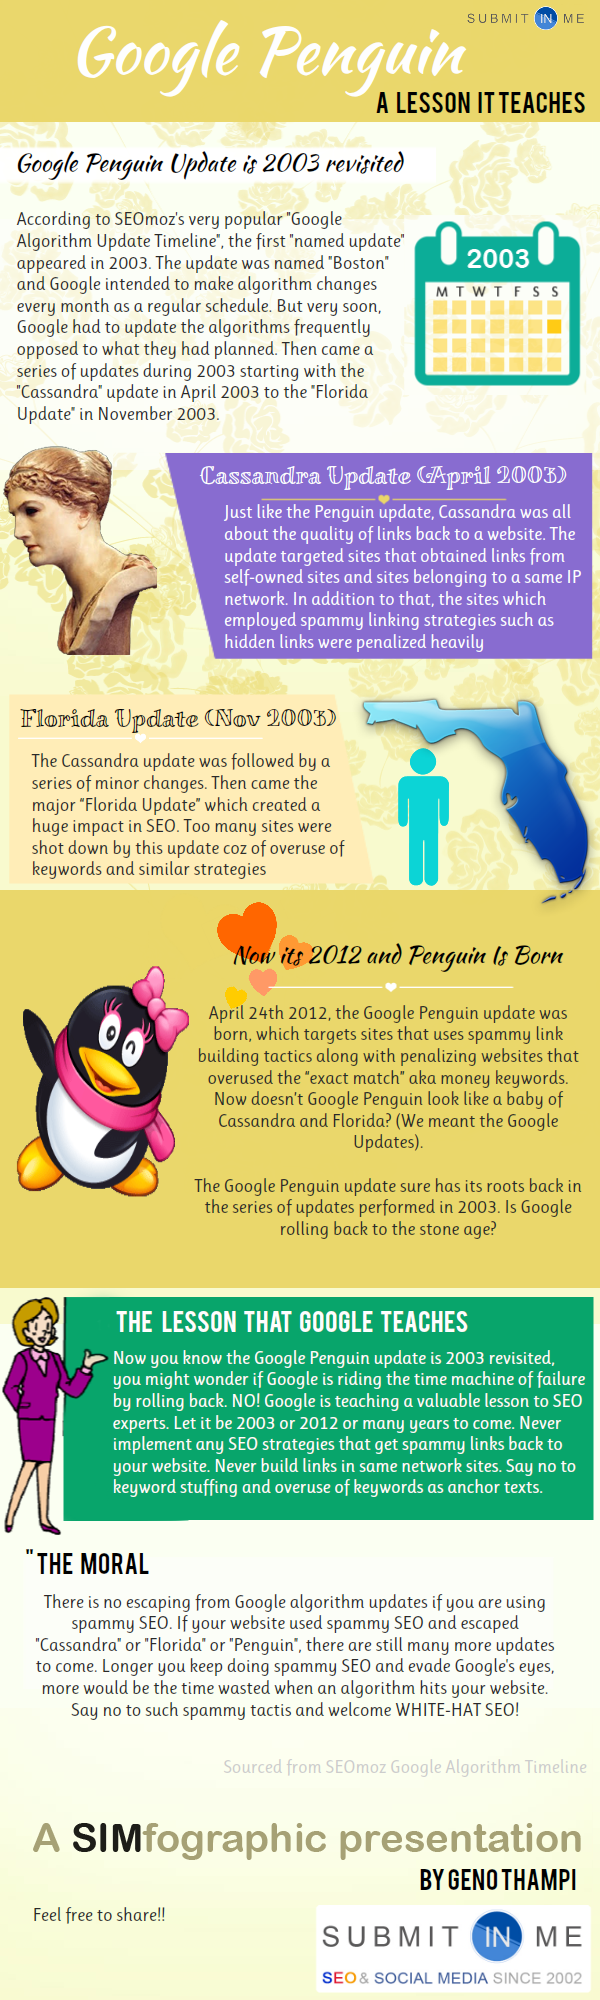 Google Penguin 2003 revisited